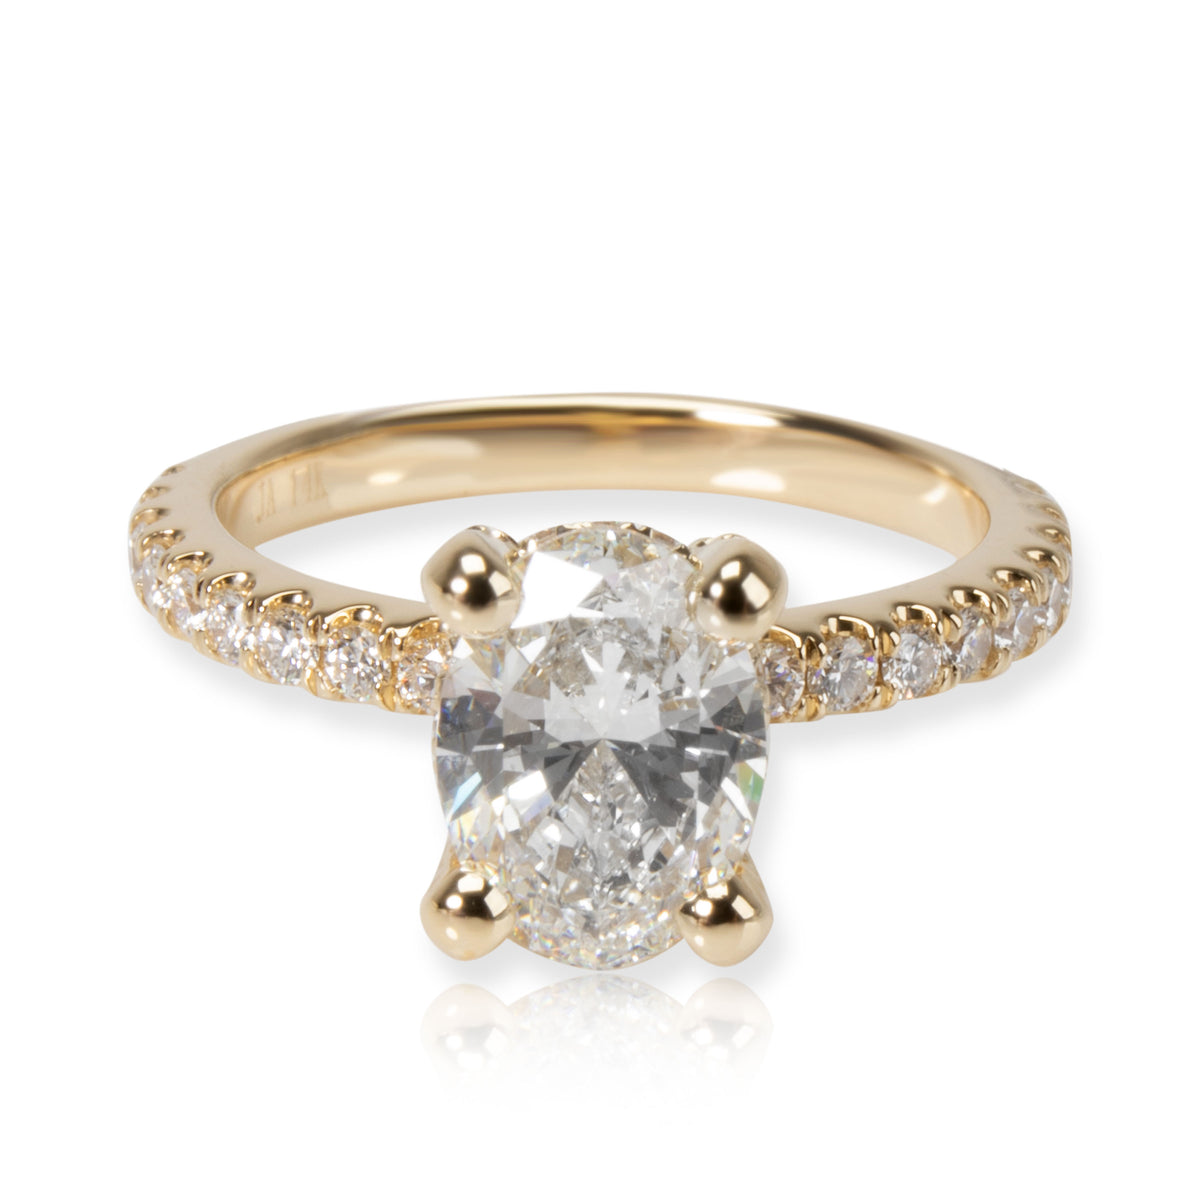 James Allen Oval Diamond Engagement Ring in 14K Yellow Gold GIA F VS2 1.33 CTW